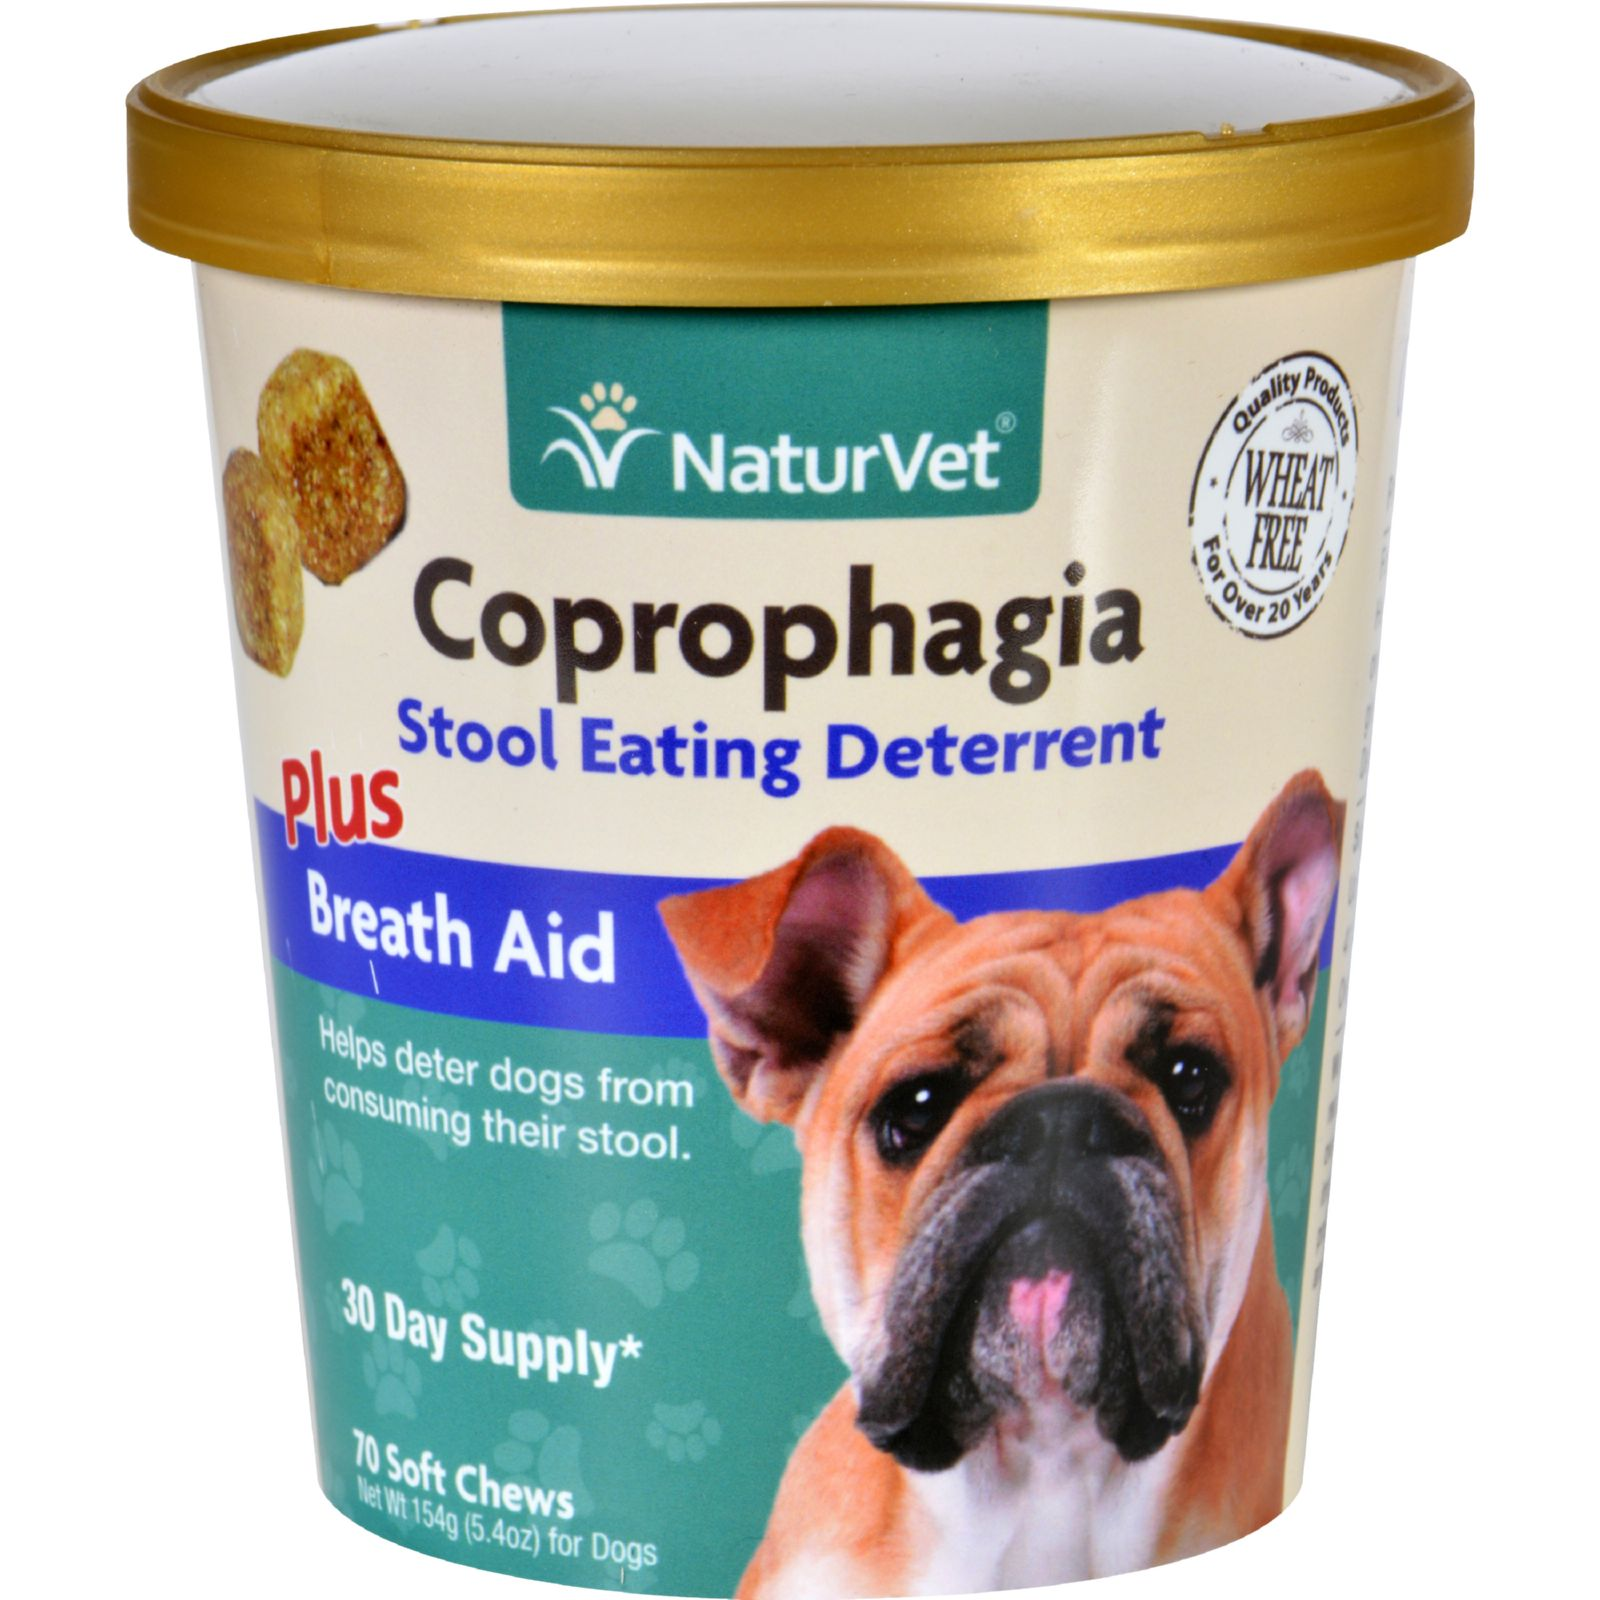 NaturVet Coprohpagia - Plus Breath Aid - Dogs - Cup - 70 Soft Chews